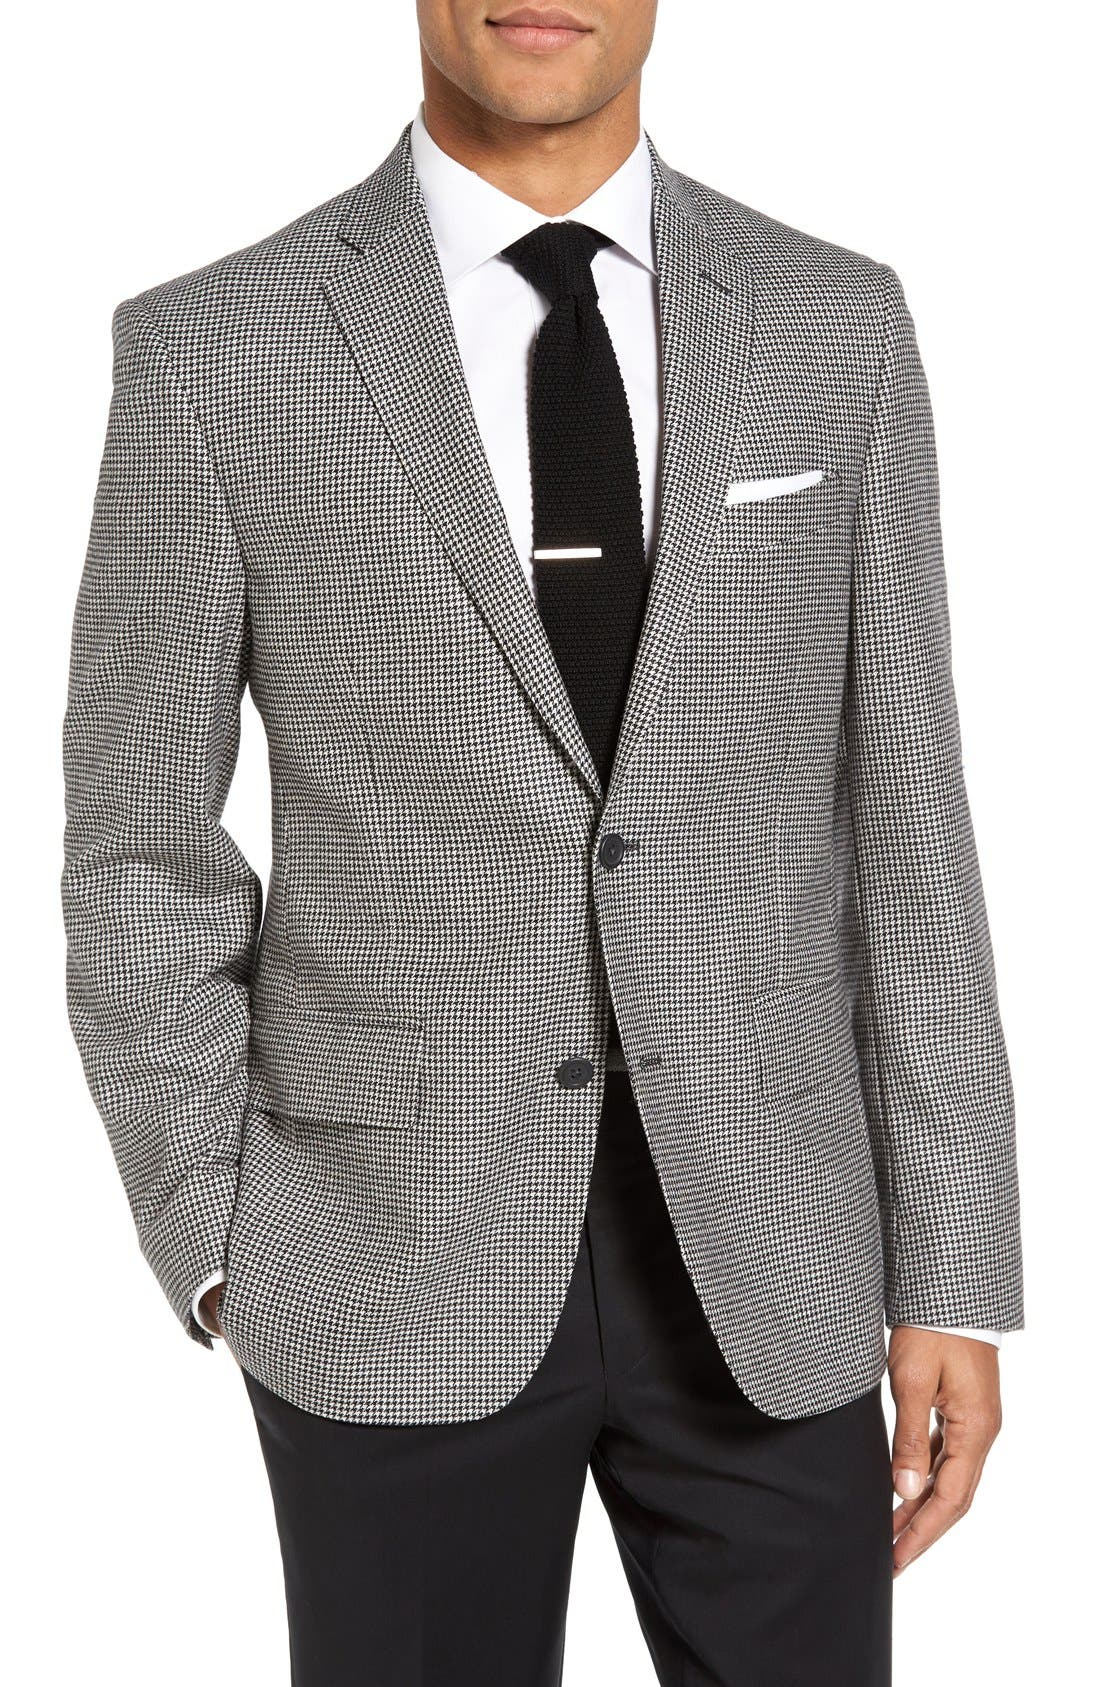 Alternate Image 1 Selected - Nordstrom Men's Shop Classic Fit Houndstooth Wool & Cashmere Sport Coat